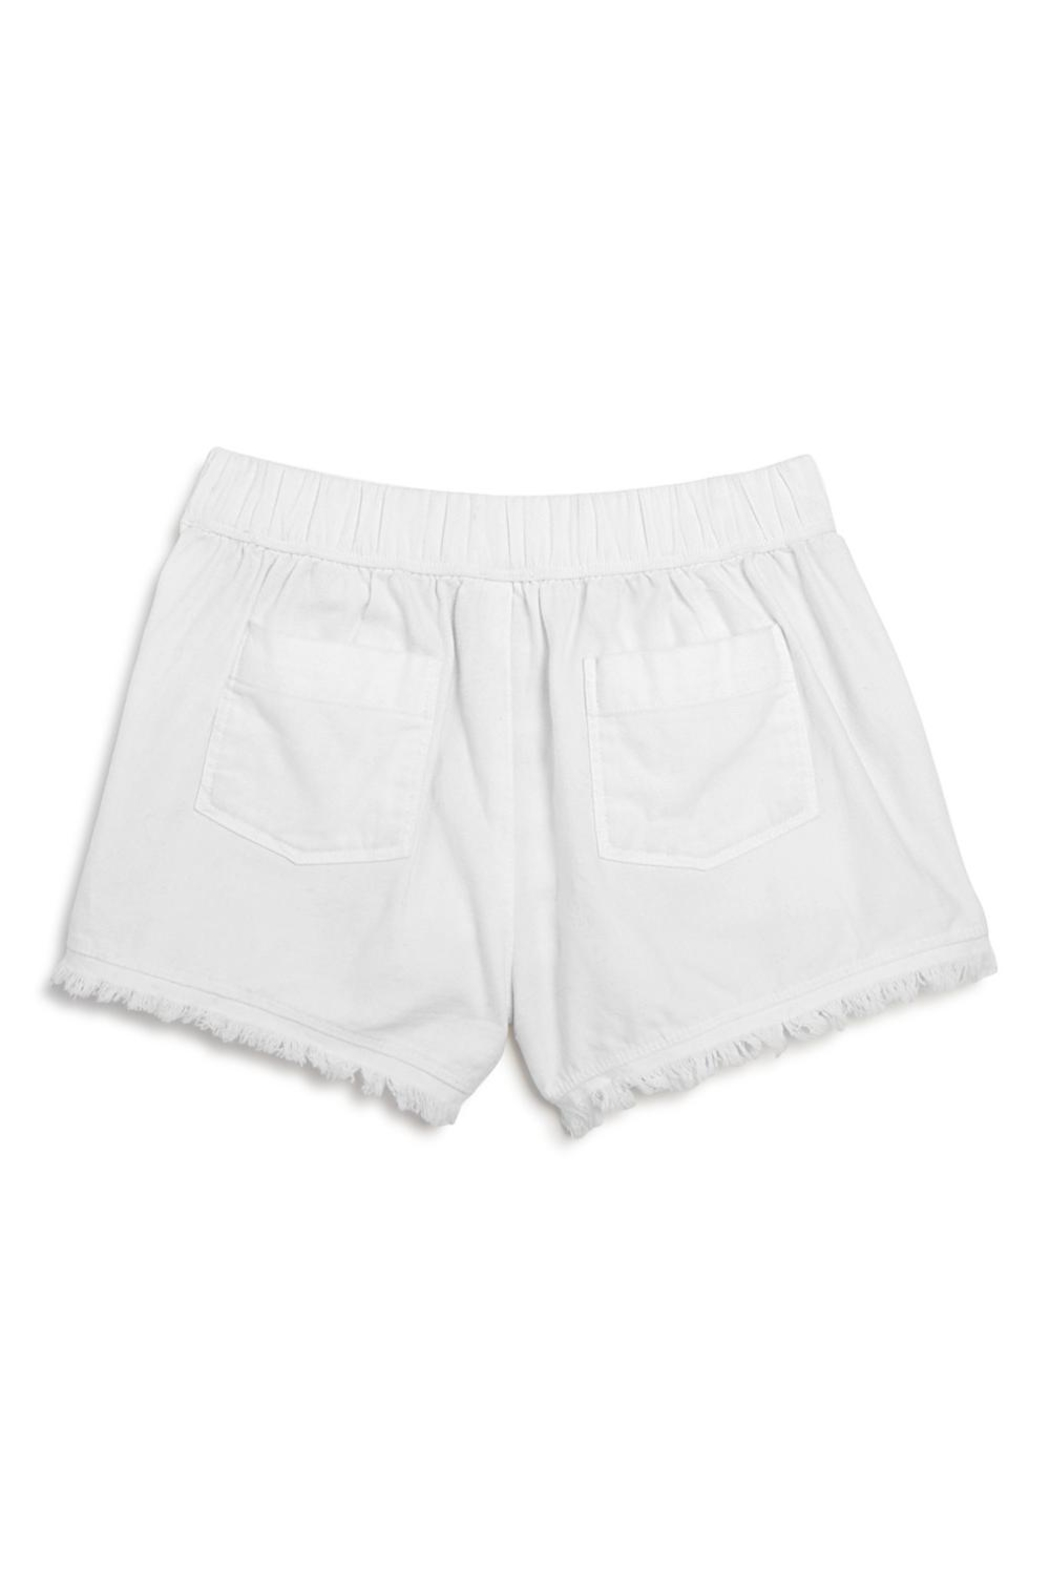 Splendid Lace Trim Shorts - Front Full Image